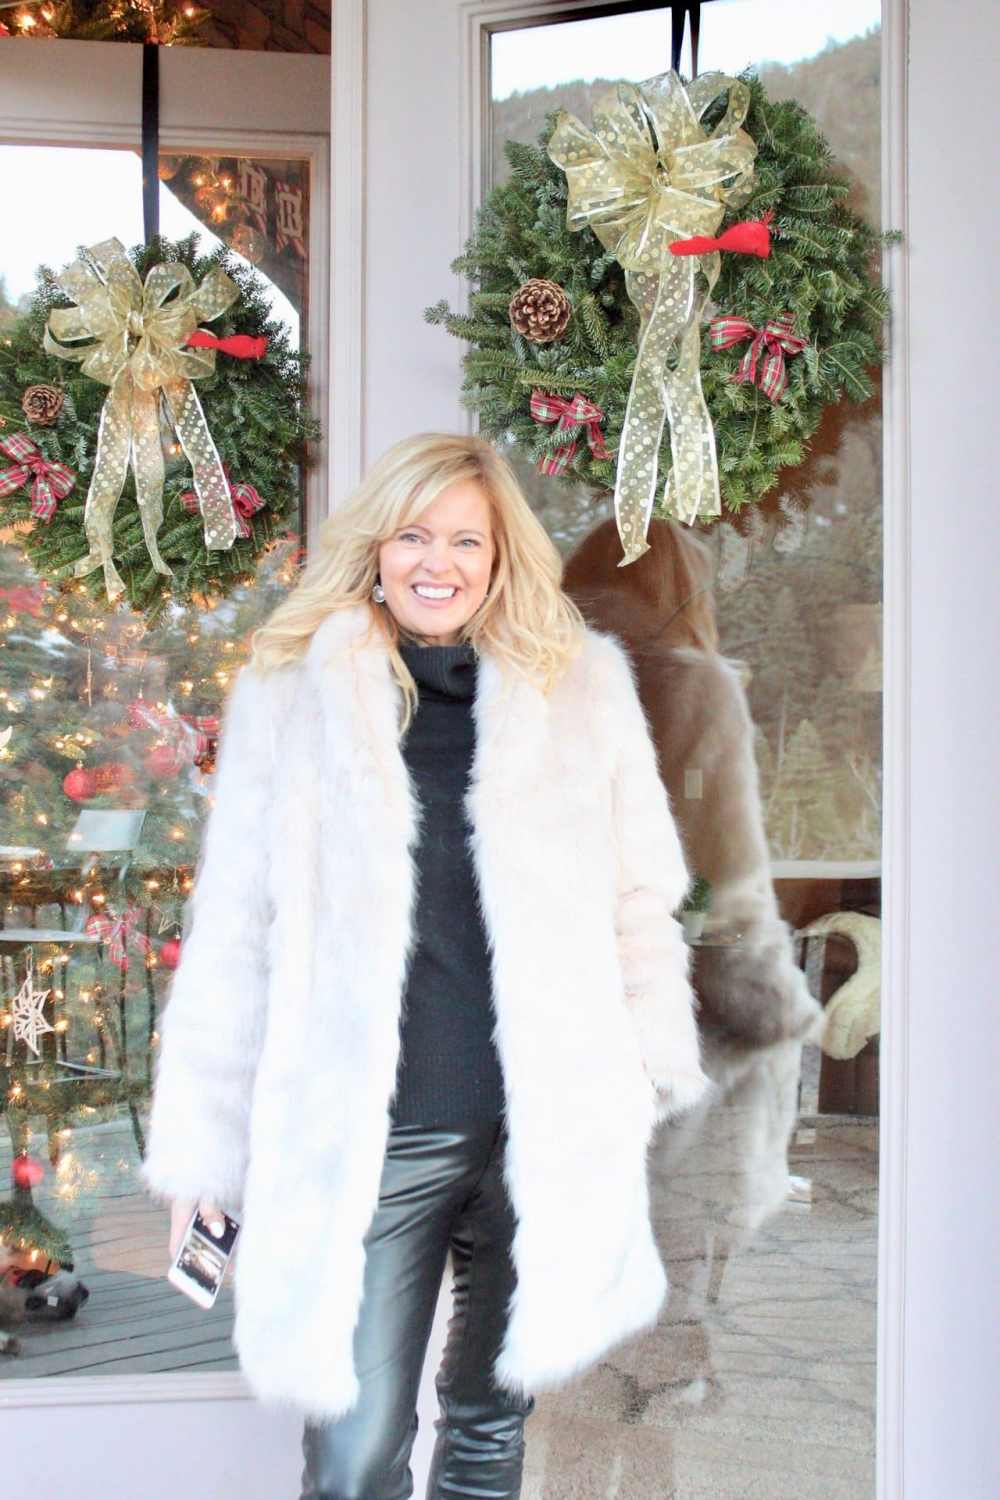 What to wear to holiday parties. If you are over 40, here's how to strategically craft a stylish holiday party outfit!